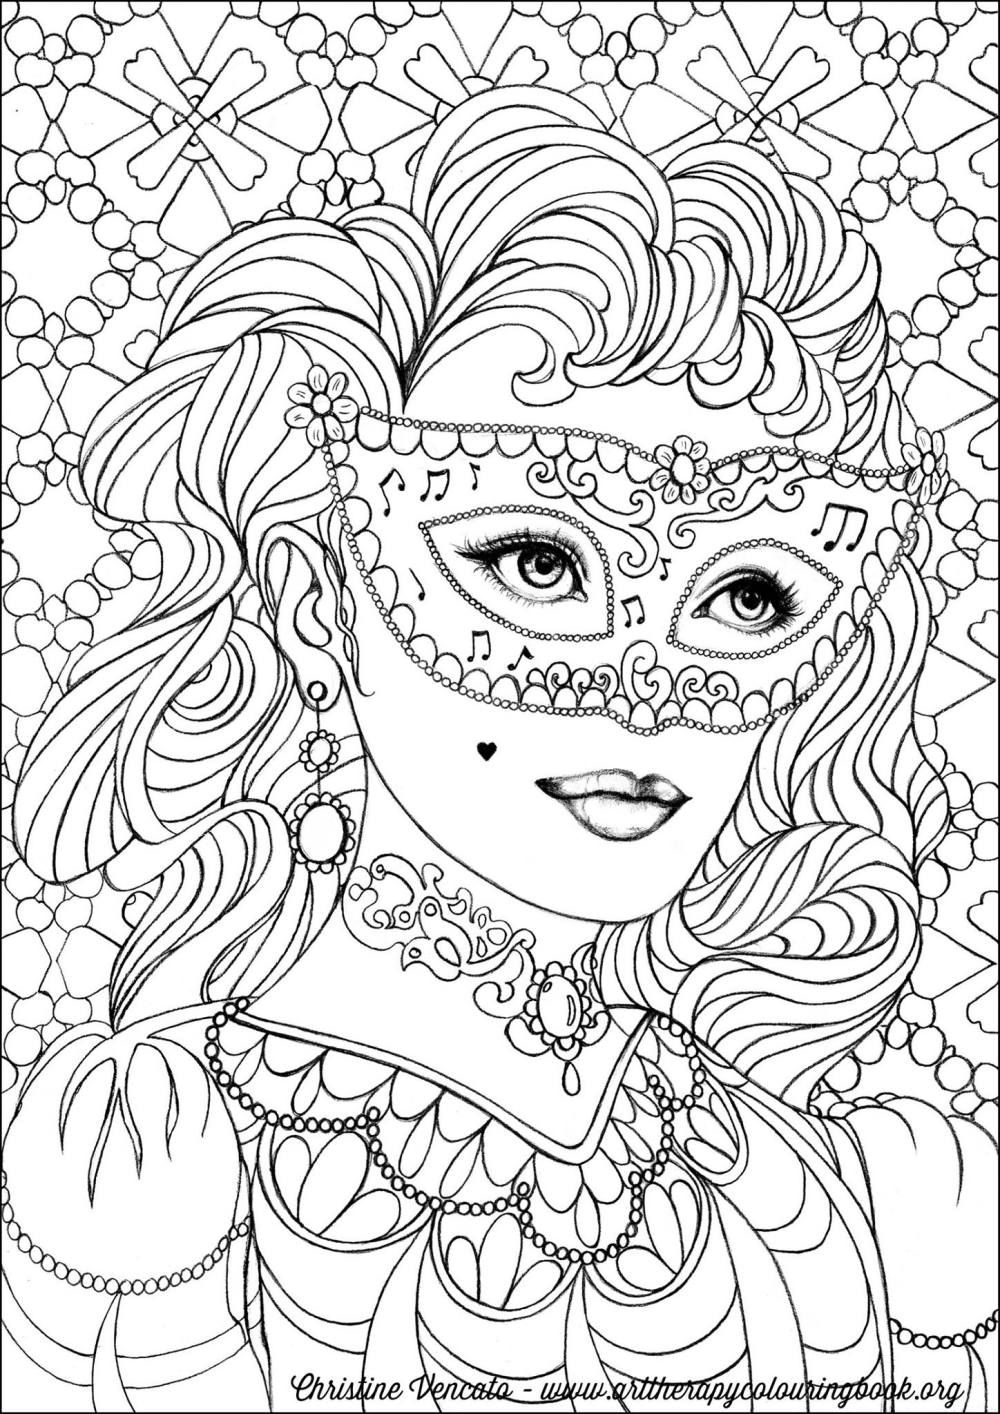 Free coloring page from adult coloring worldwide art by Colouring book for adults online